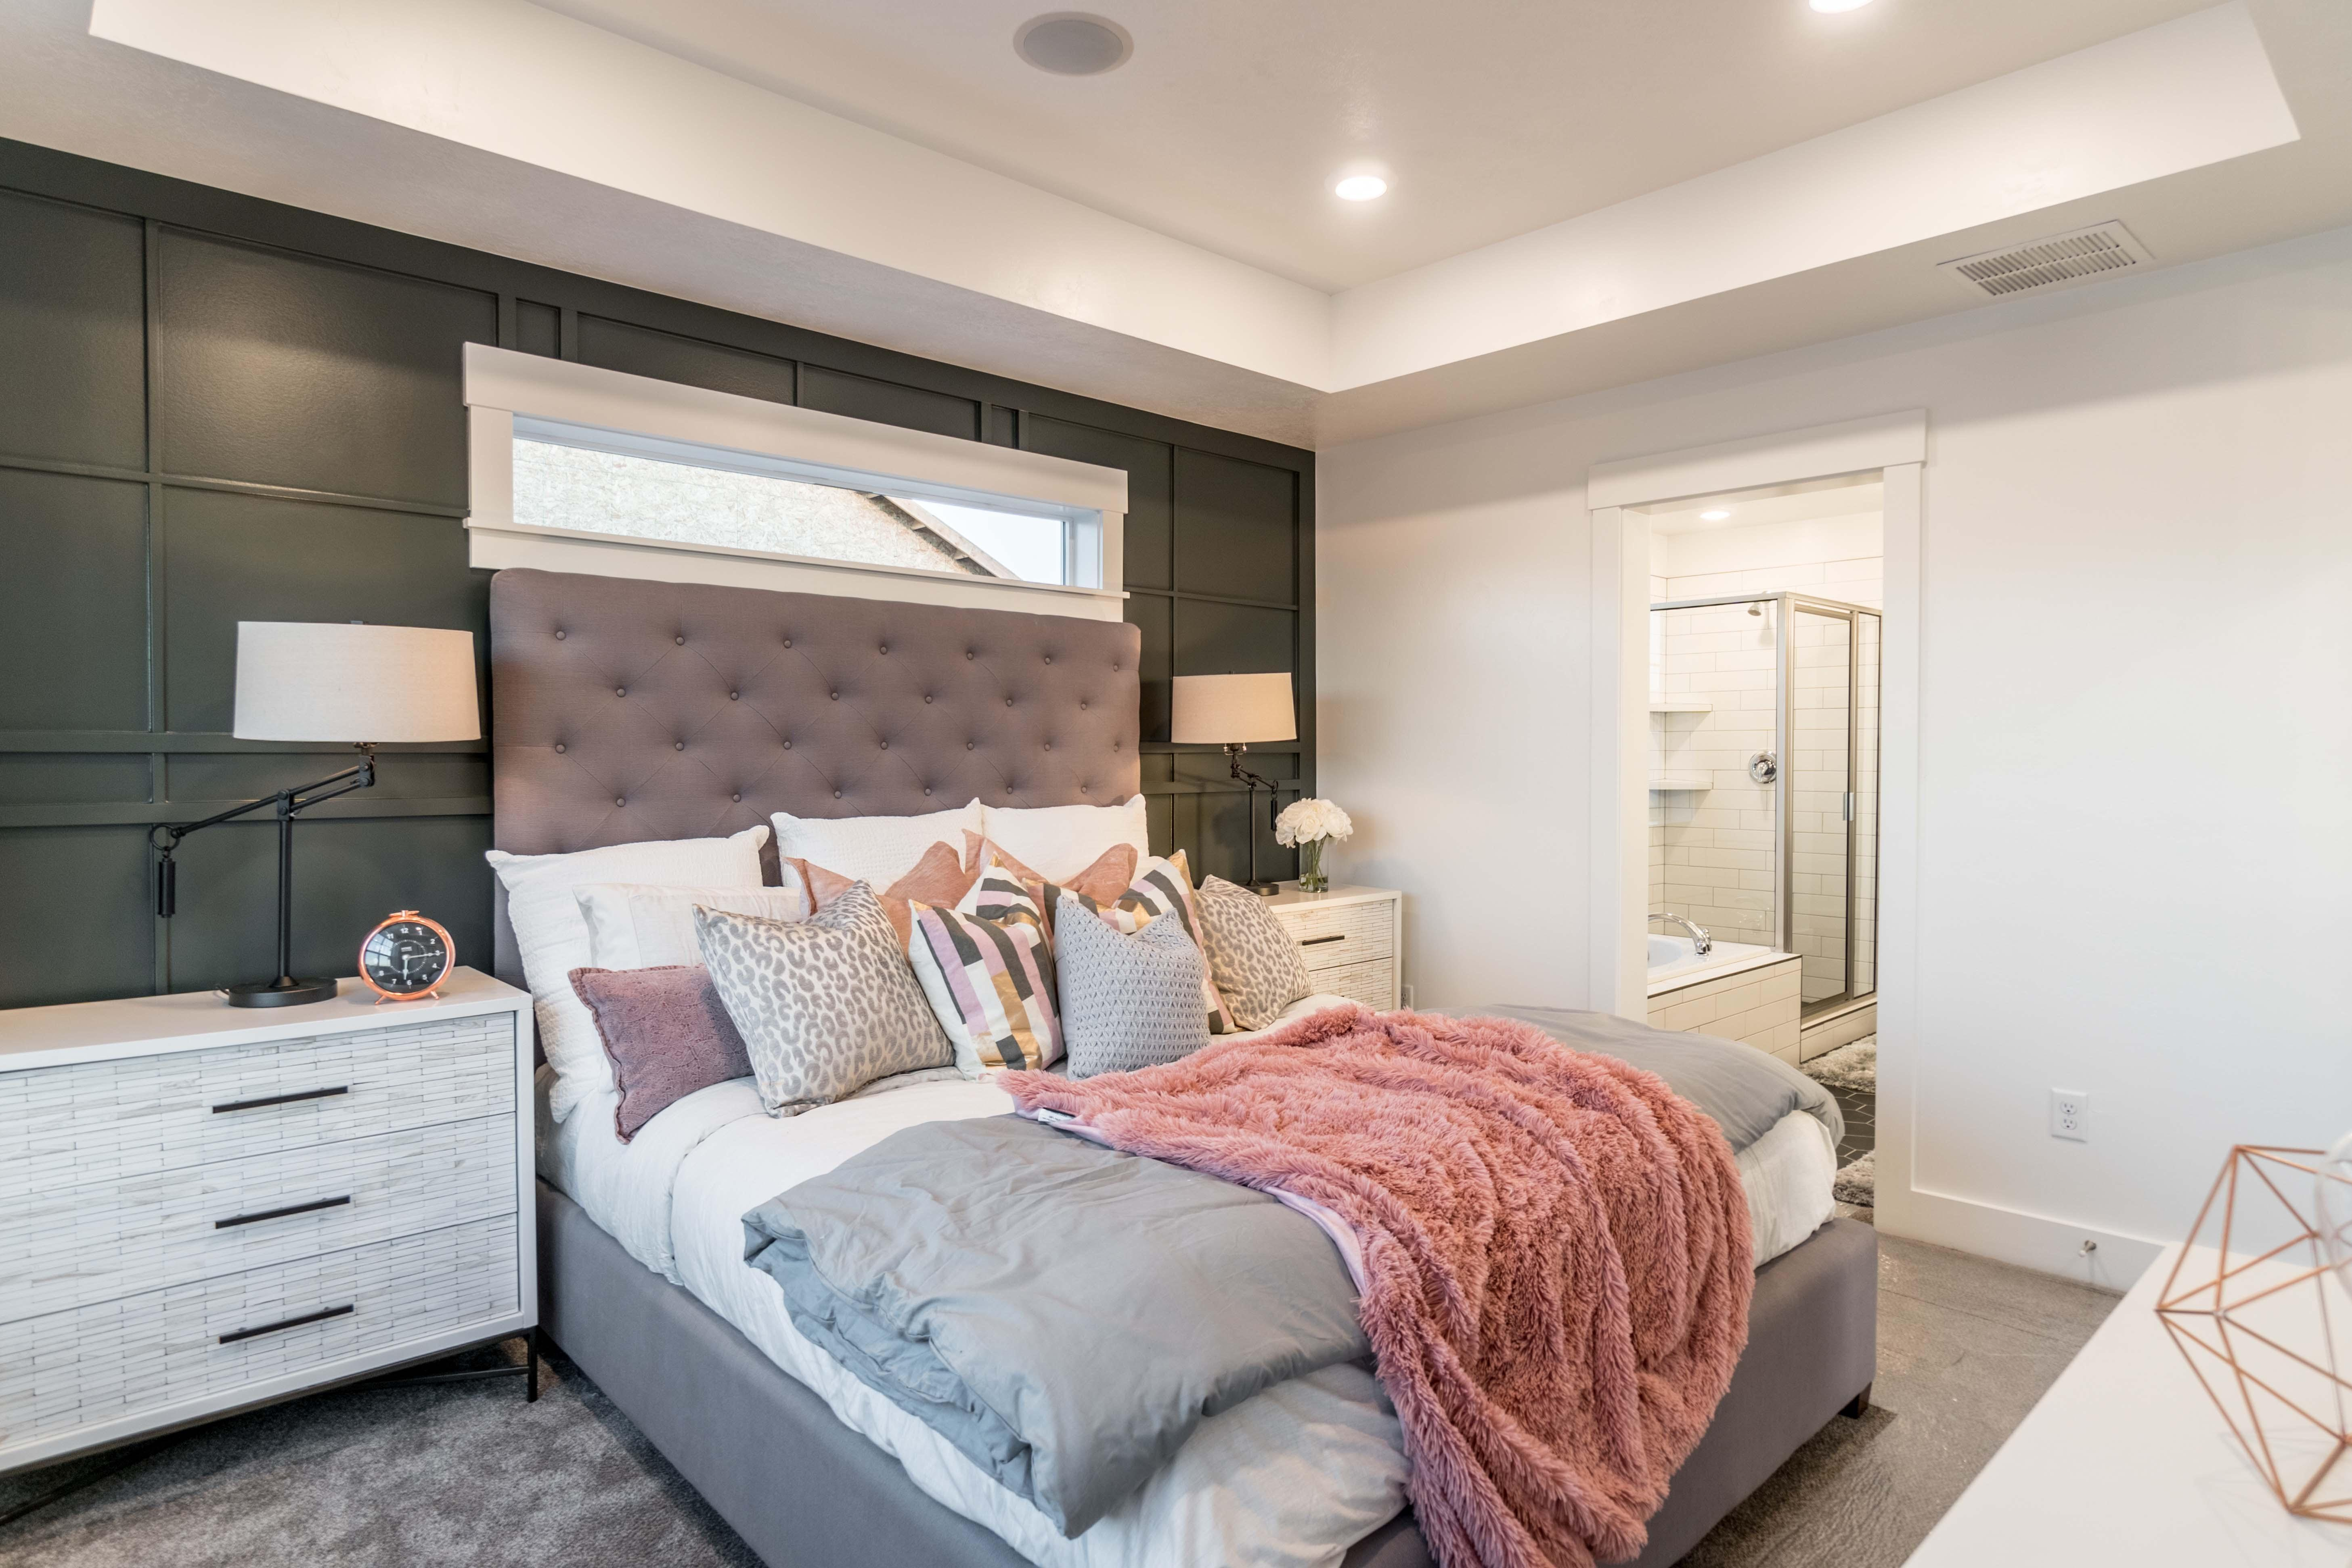 Bedroom featured in the Glendale (SOG) By Visionary Homes in Logan, UT